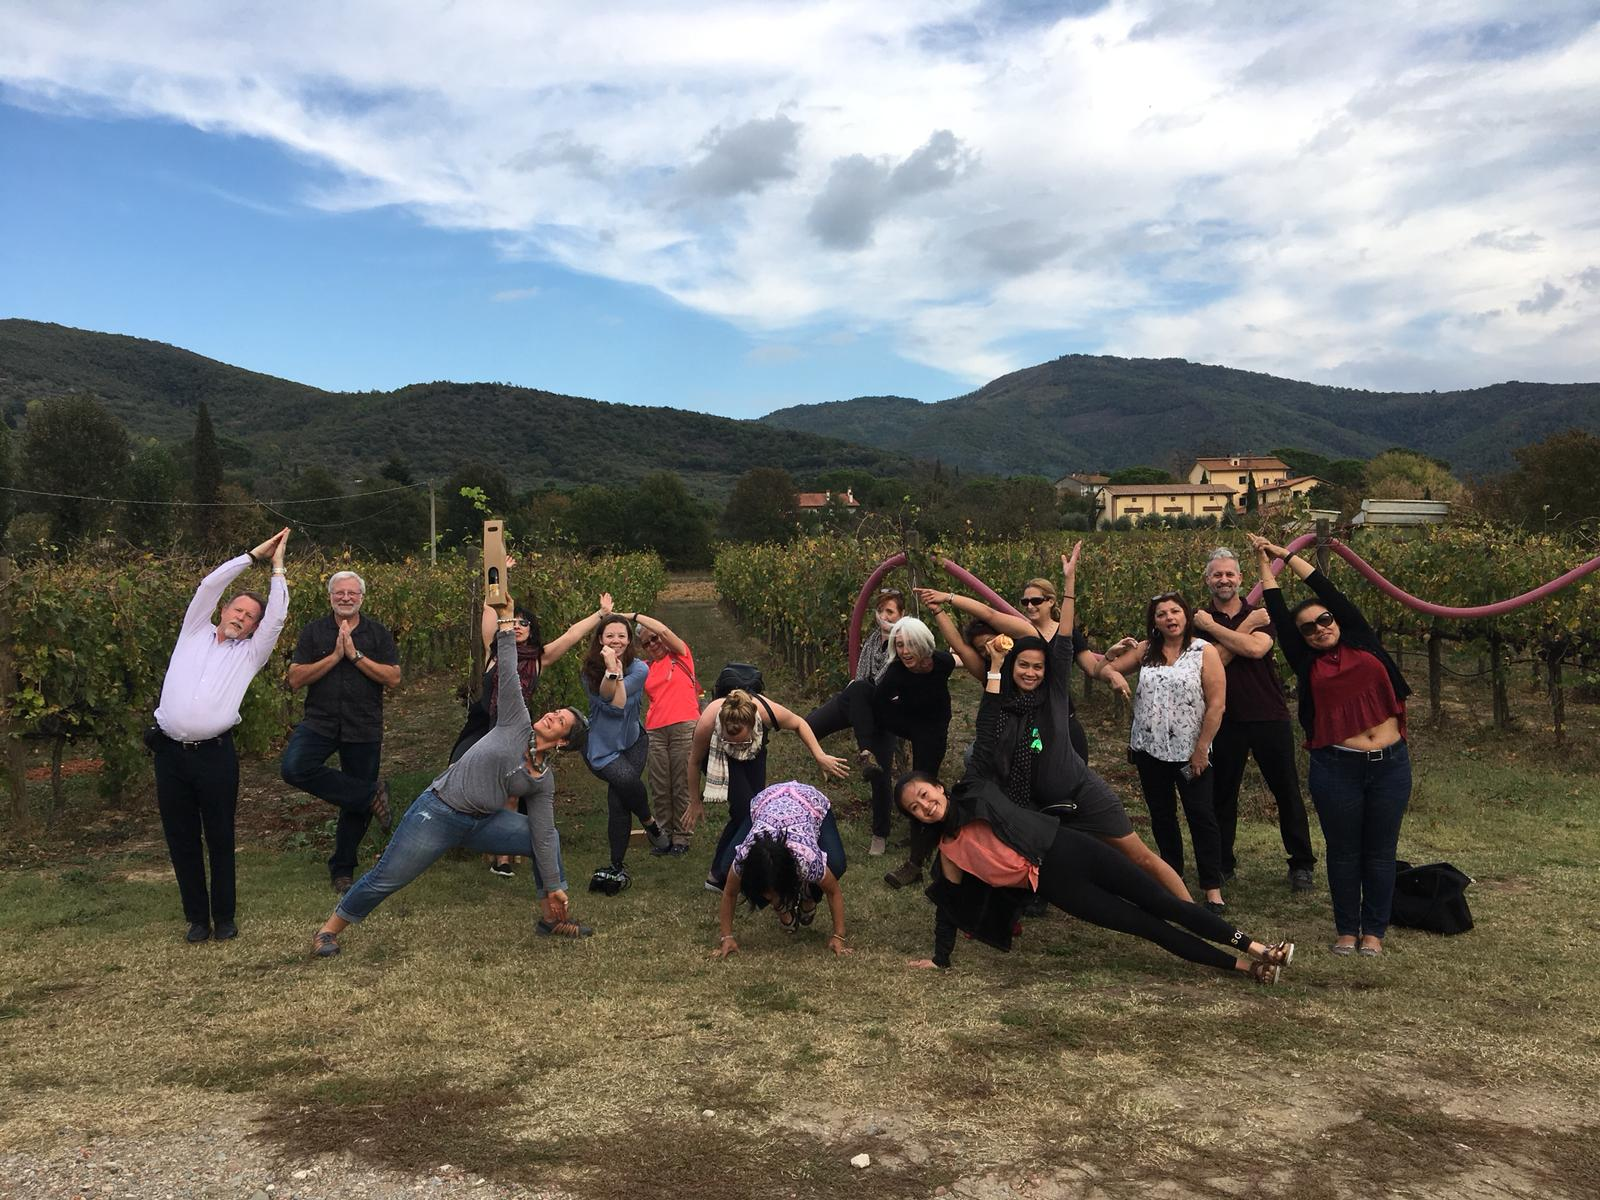 group photo asana 2018 italy retreat.JPG